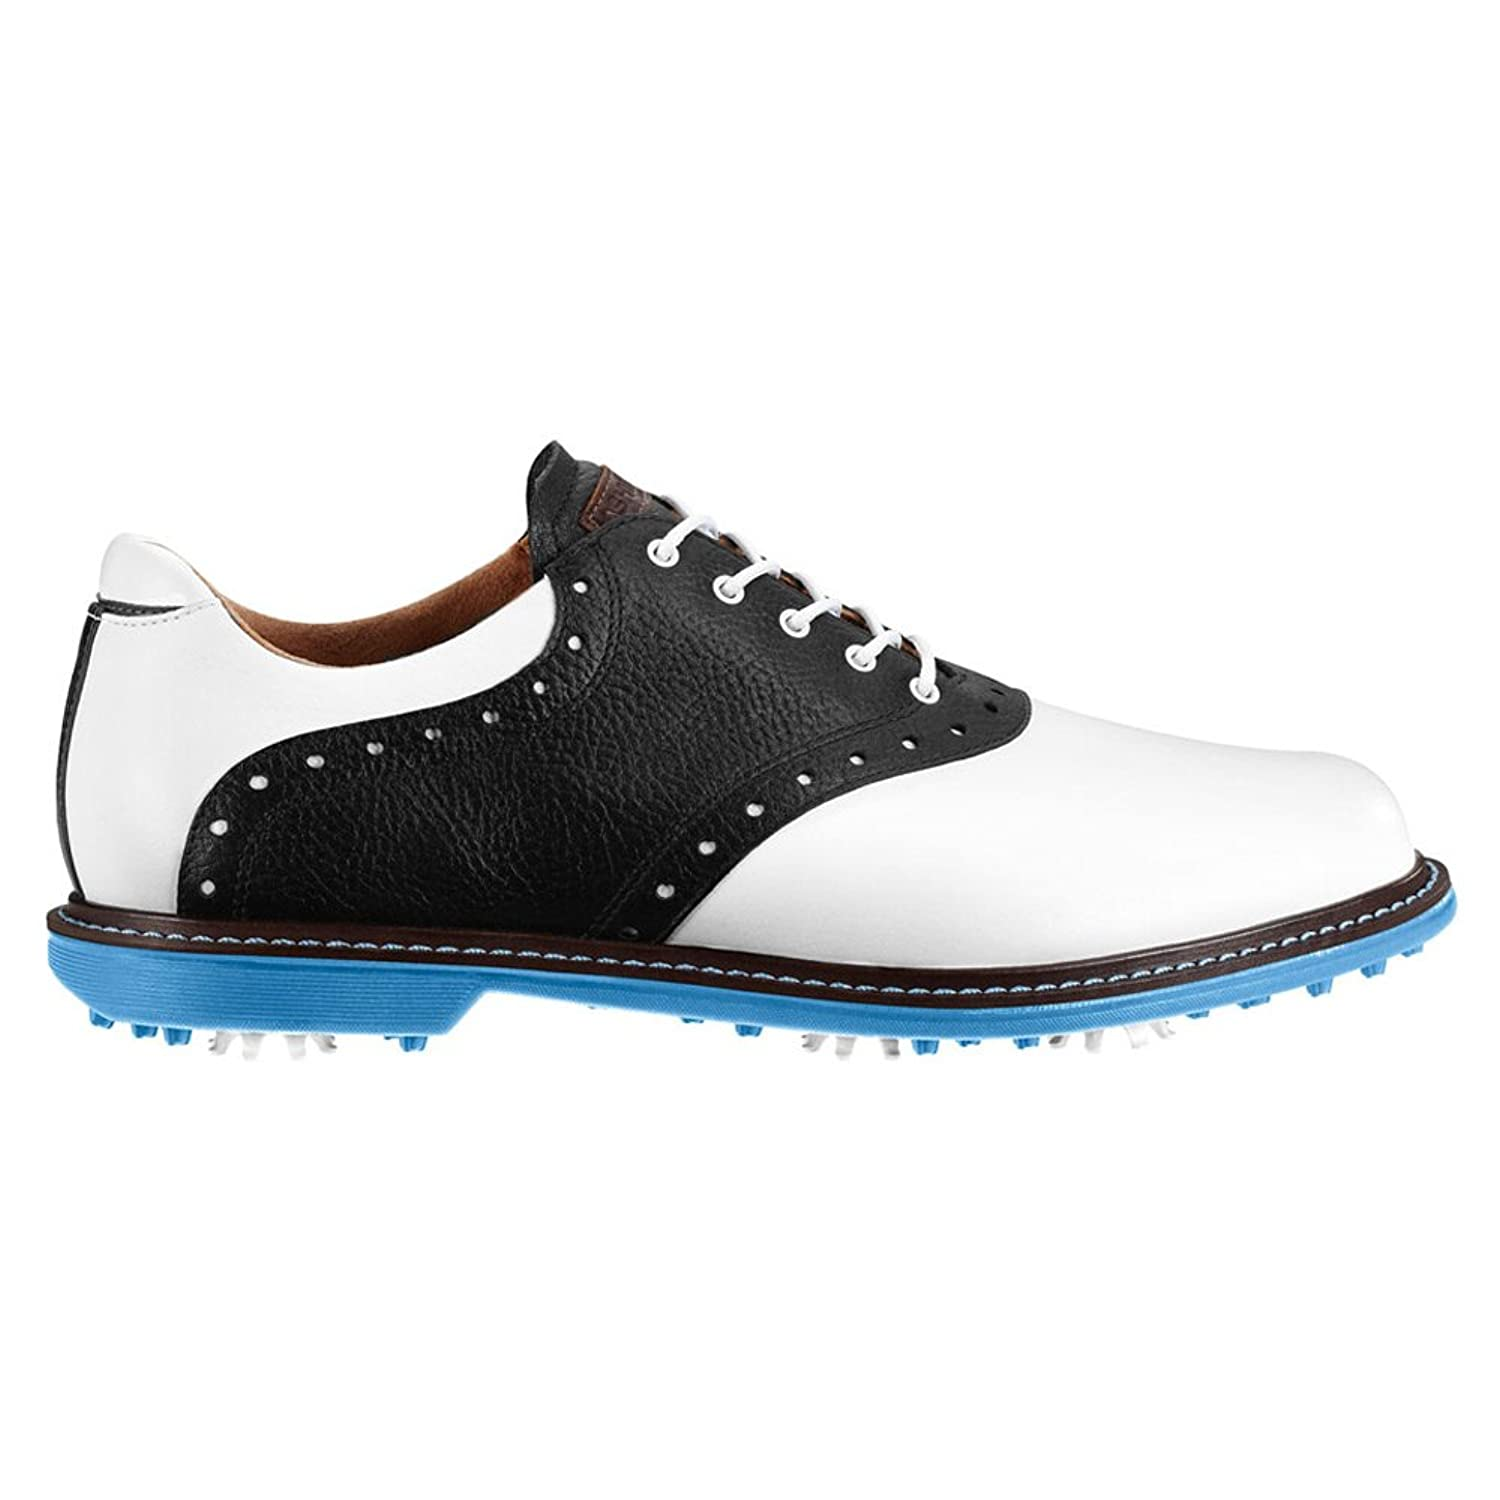 Ashworth Golf Kingston Golf Shoes